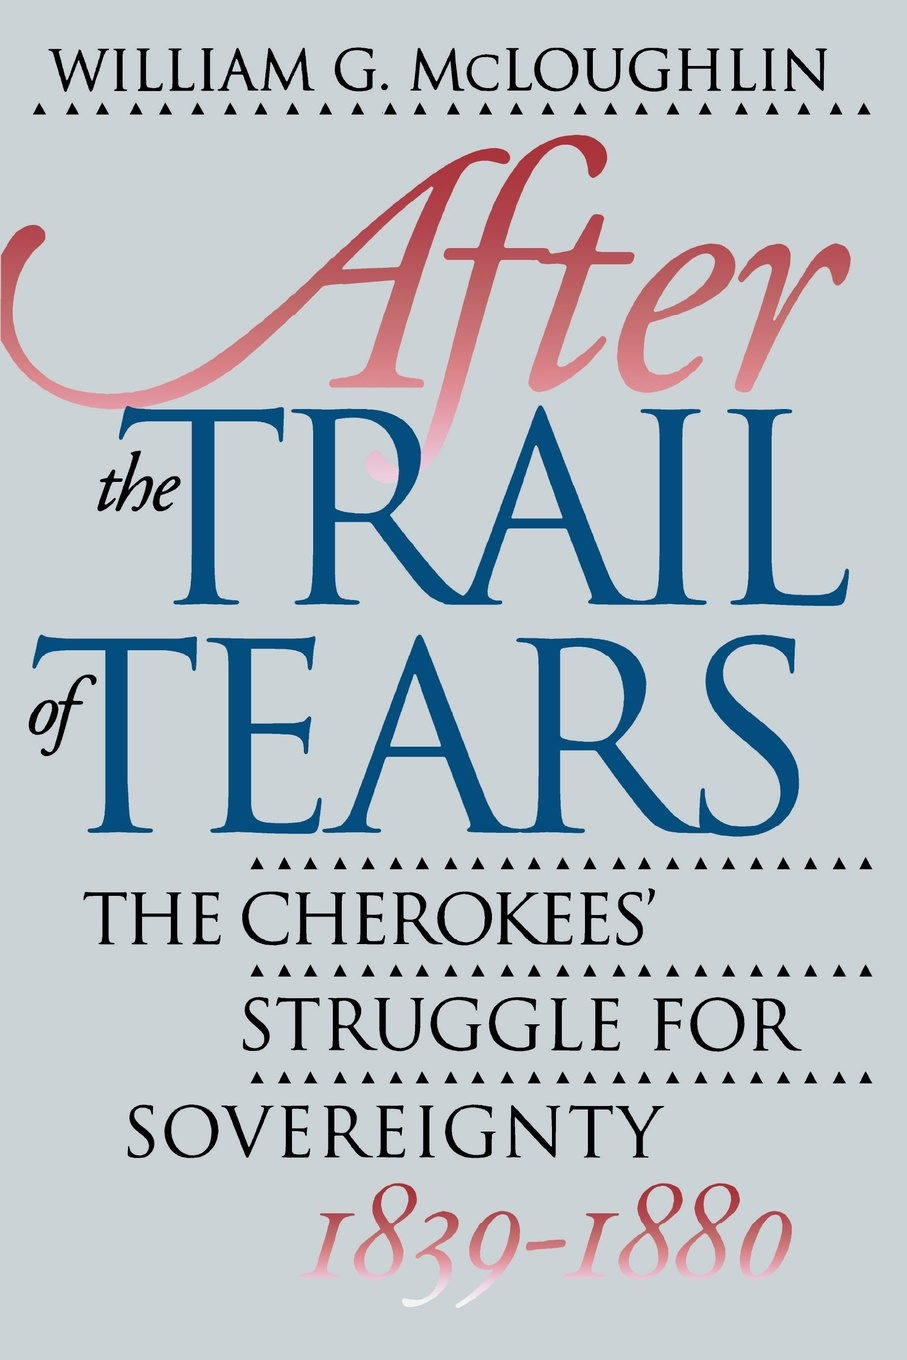 William G. McLoughlin After the Trail of Tears. The Cherokees' Struggle for Sovereignty, 1839-1880 p j mcloughlin mcloughlin john hume and the revision of irish nationalism